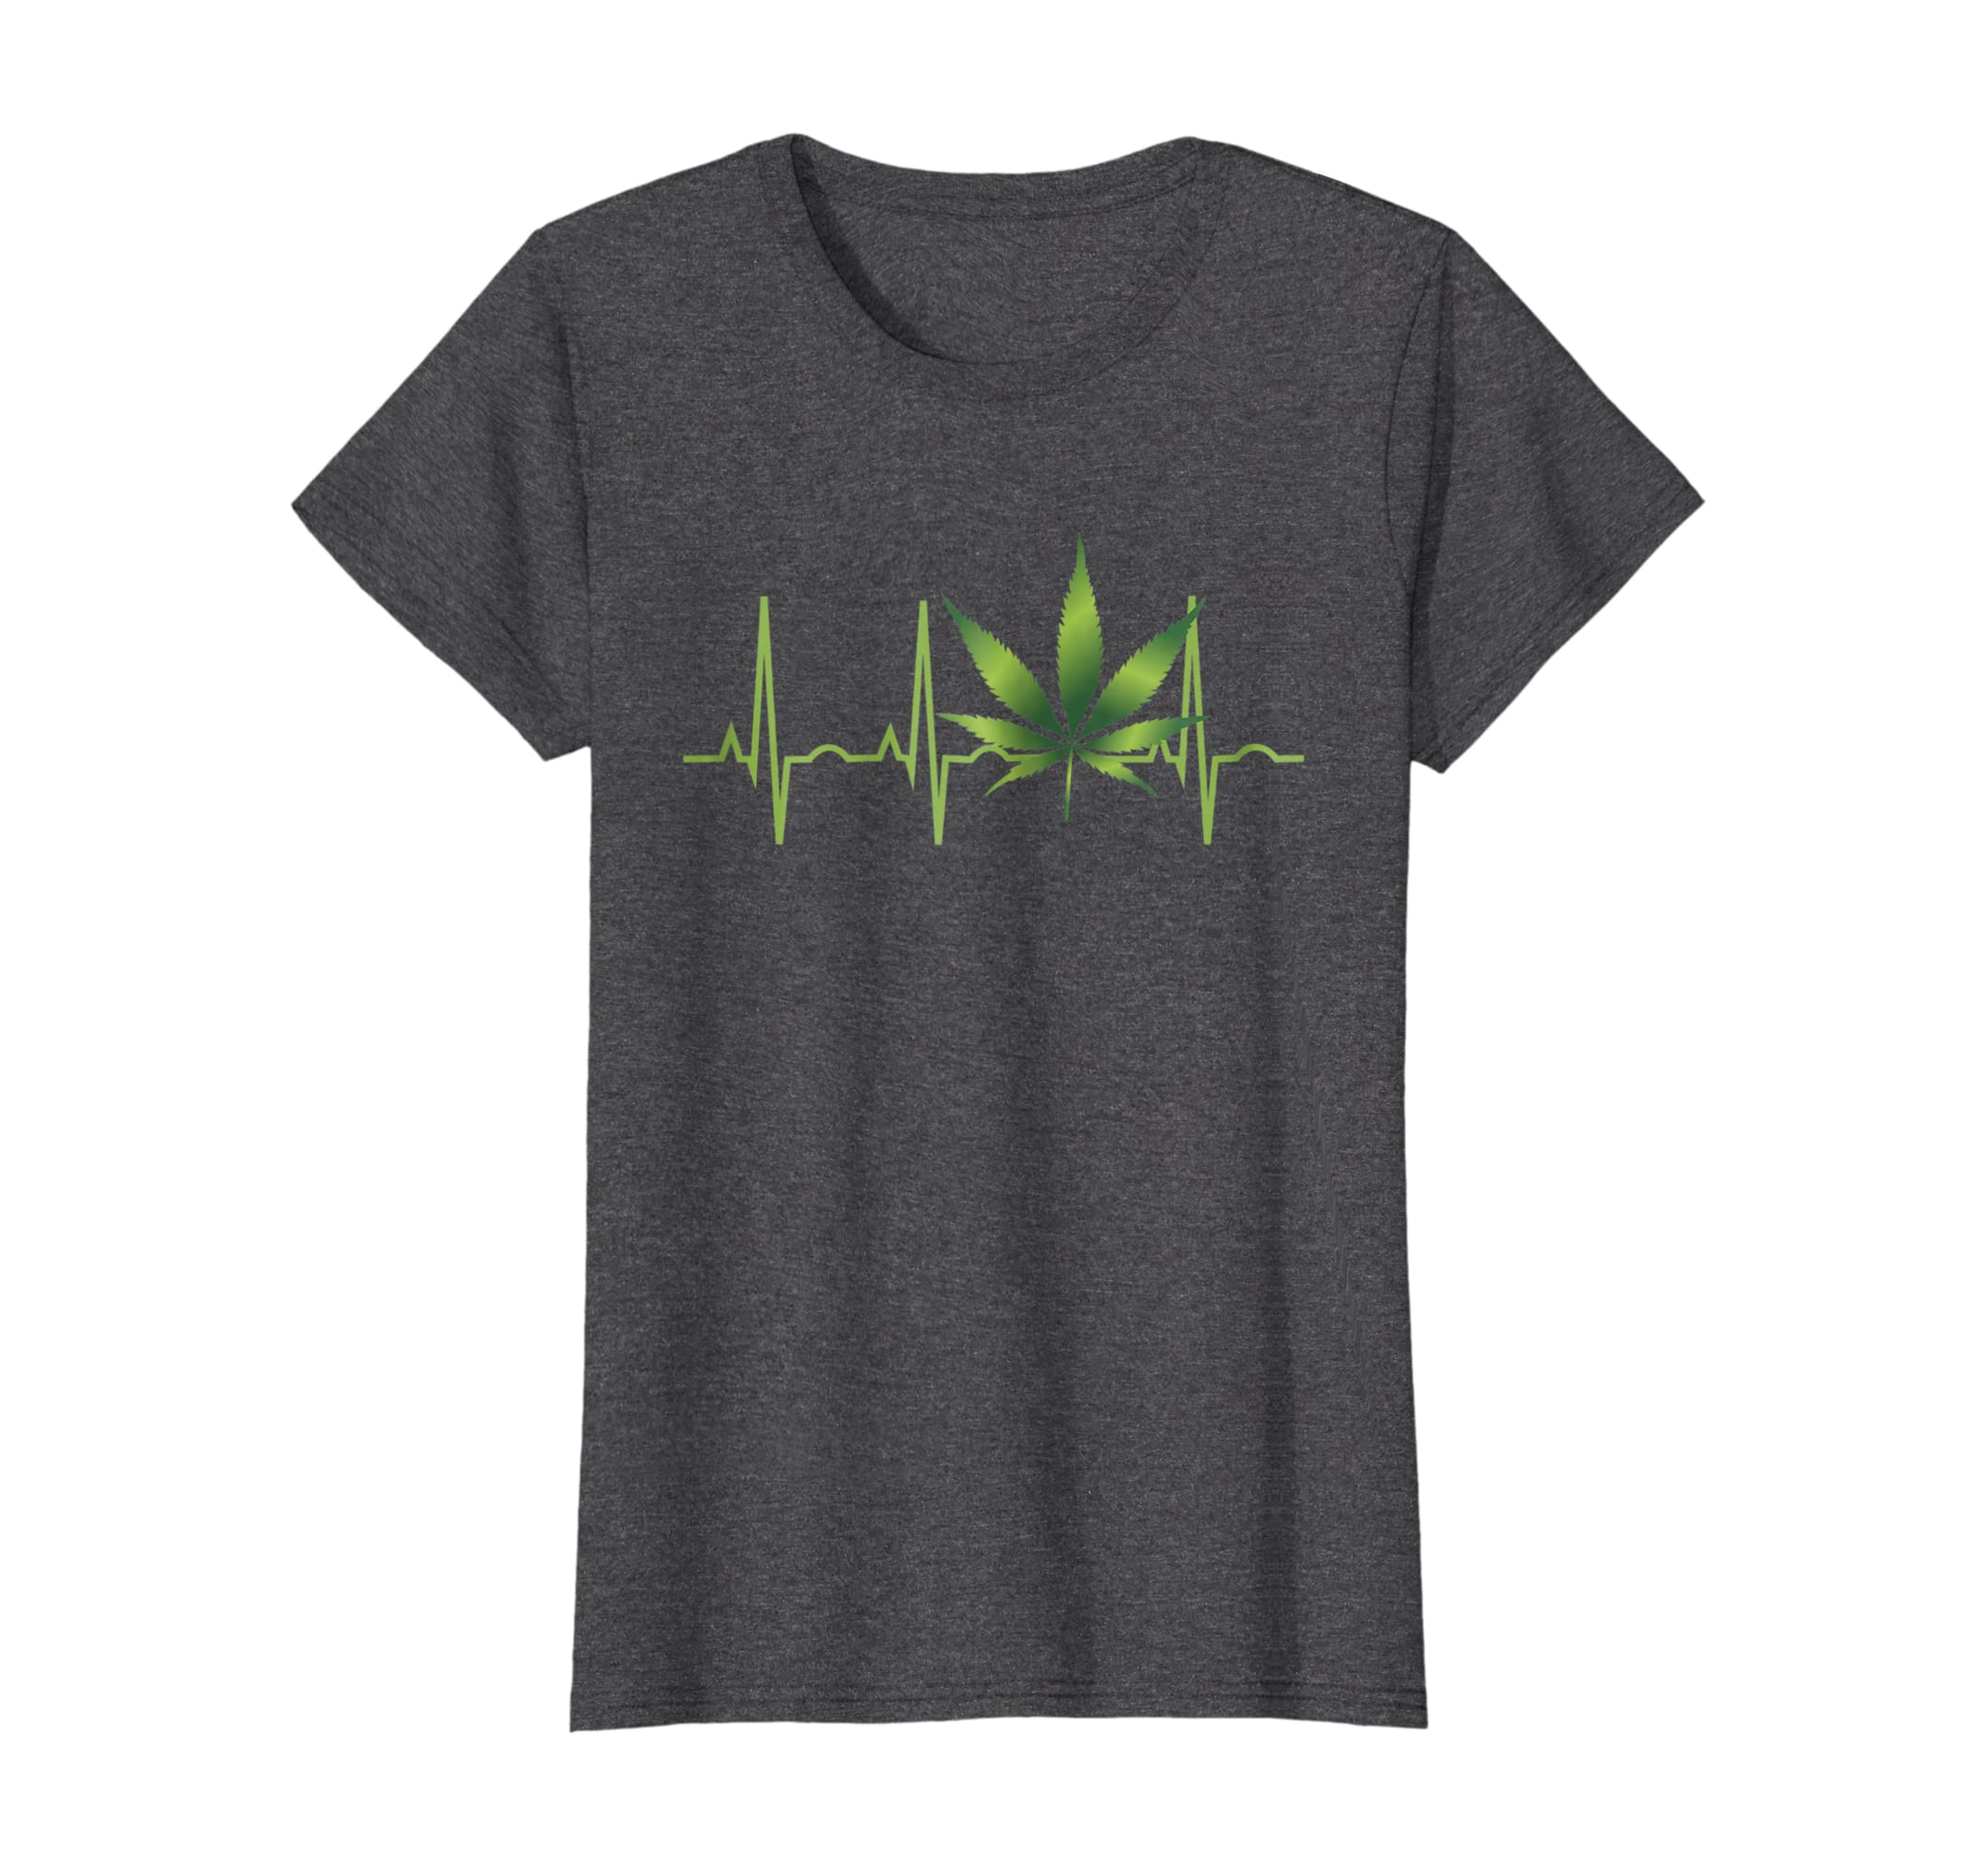 049f8b06a Amazon.com: Weed Shirts for Men & Women Marijuana Leaf Heartbeat Gift:  Clothing